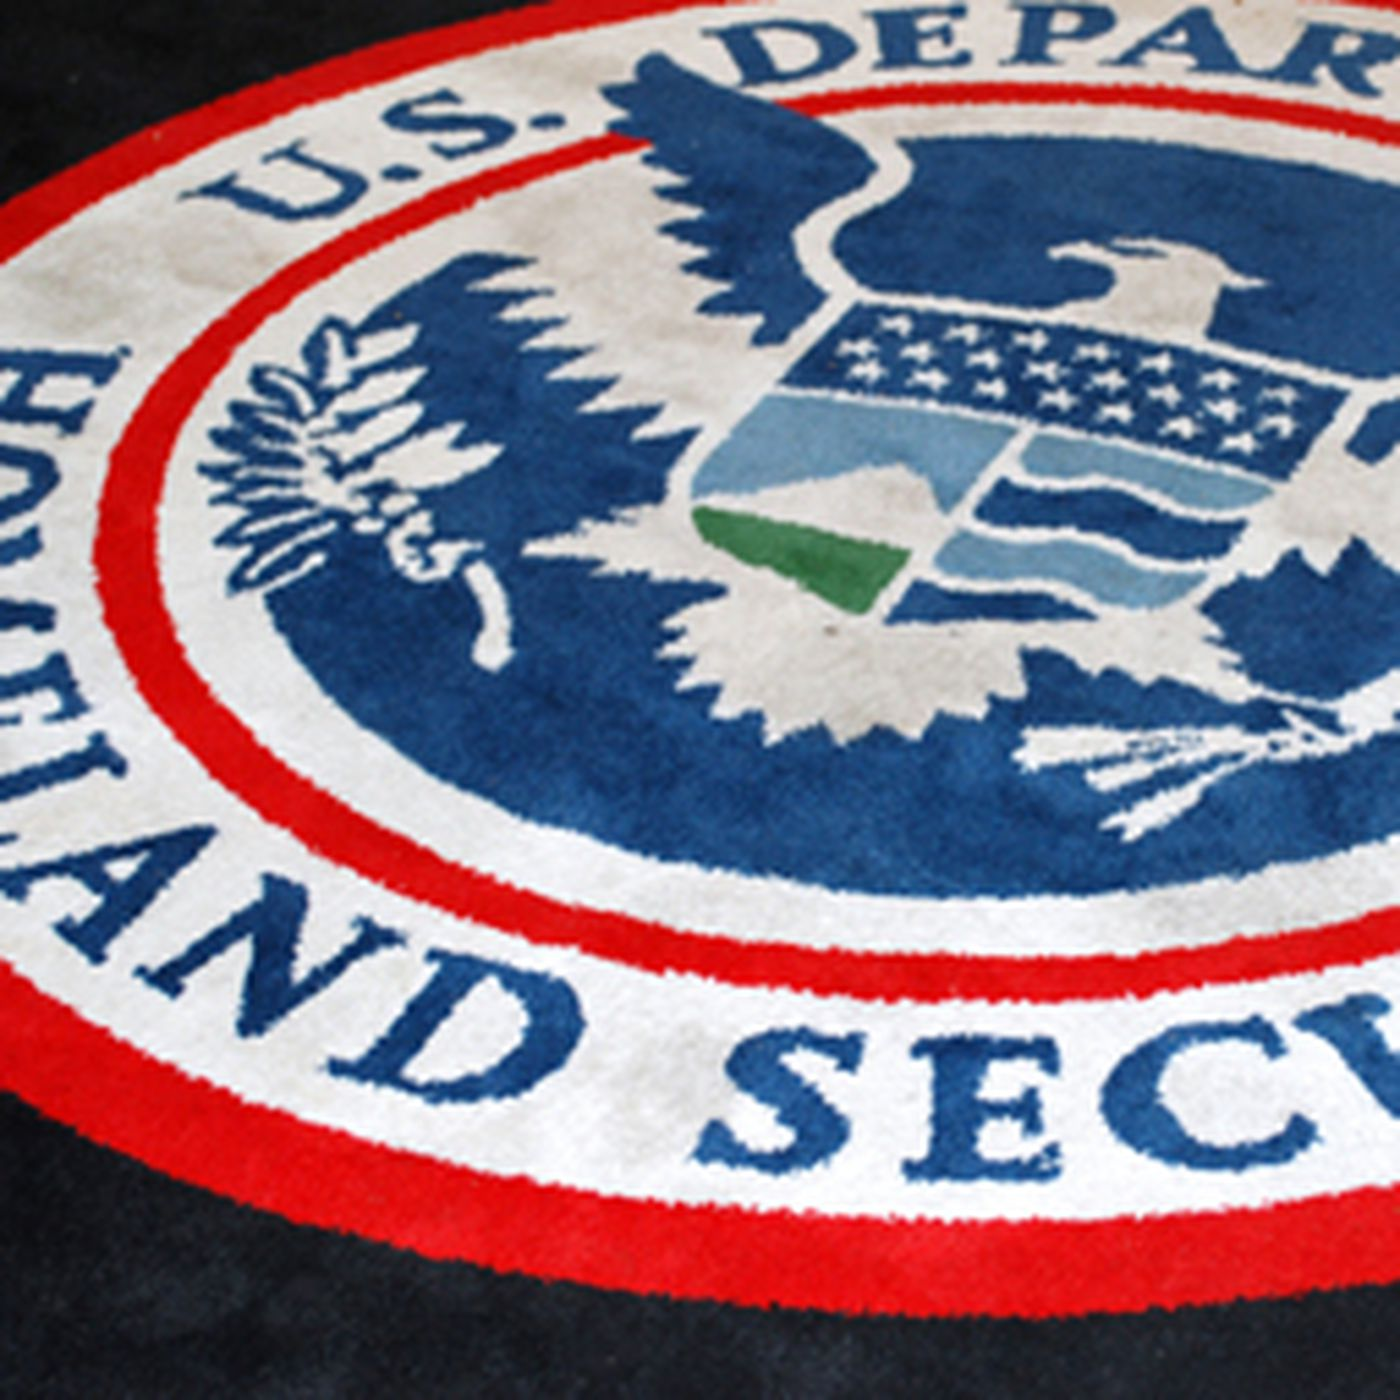 Here's what would happen if the Department of Homeland